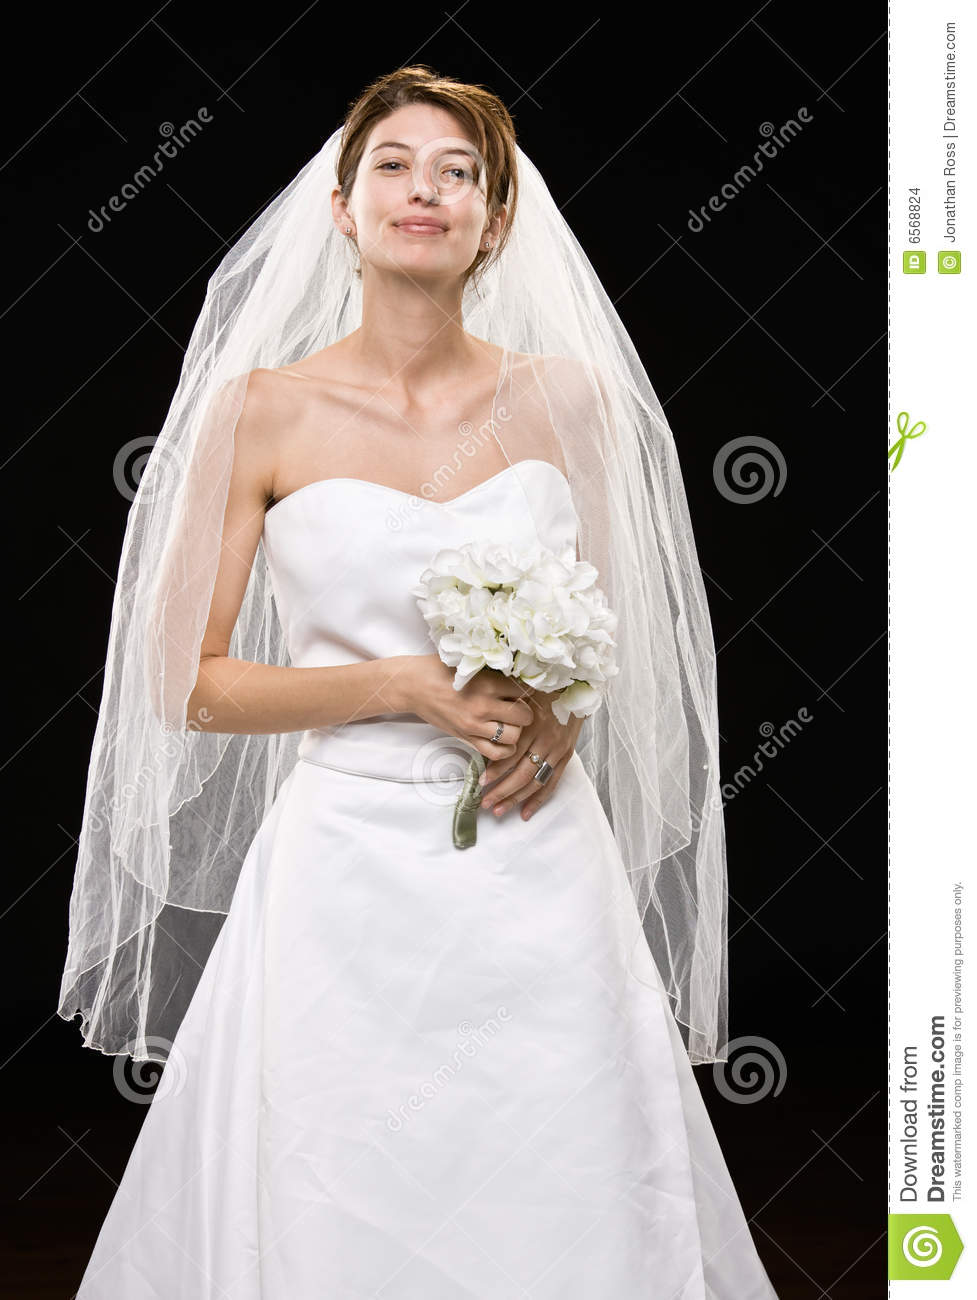 Pictures Of Wedding Dresses With Veil